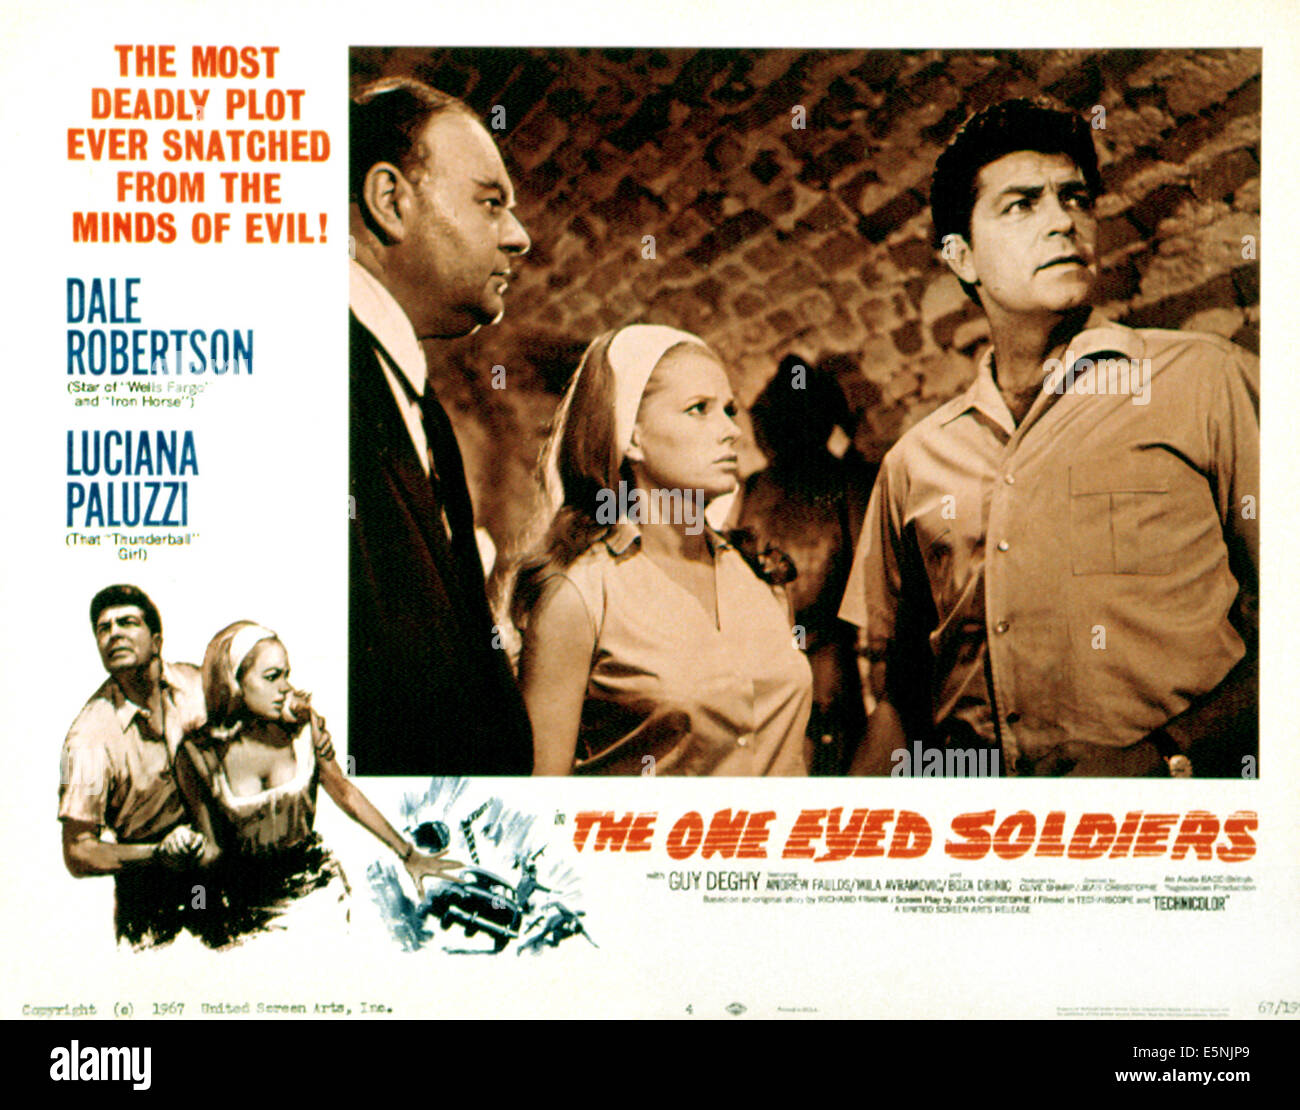 THE ONE EYED SOLDIERS, Luciana Paluzzi (center), Dale Robertson (right), (lobbycard), 1966 - Stock Image